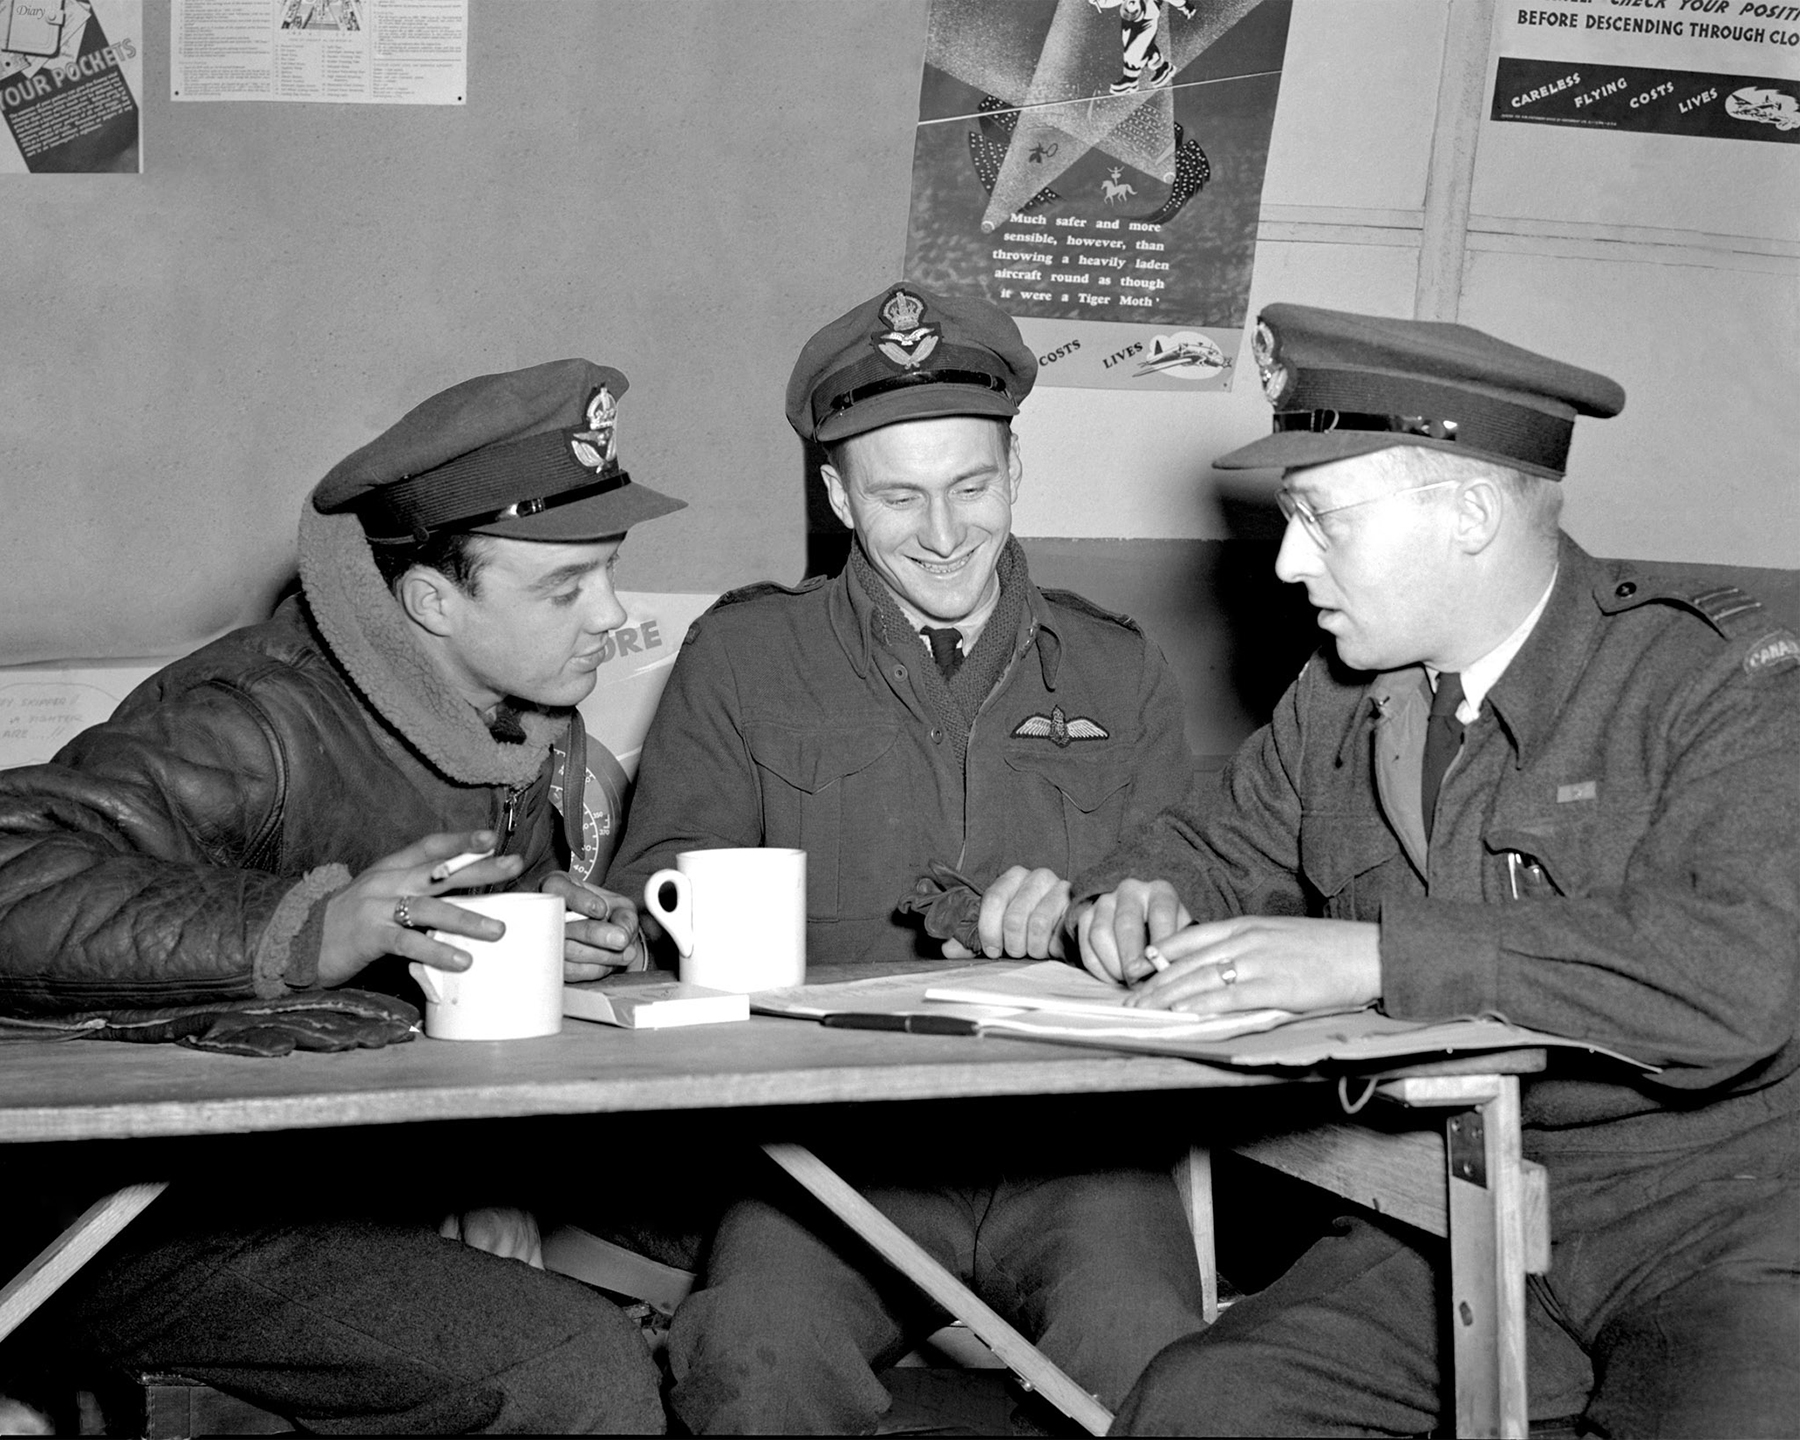 "Just after a successful raid on Dusiburg, Germany, signifying their full completion of a tour of operations, 408 ""Goose"" Squadron RCAF Overseas bomb aimer Pilot Officer R. Slessor (left) (Edmonton, Alberta) and Pilot Officer R.W. Bowhay, a pilot, (centre) (Three Hills, Alberta) undergo their final debriefing by station intelligence officer Flight Lieutenant W. Pilkington (Edmonton, Alberta). PHOTO: DND Archives"